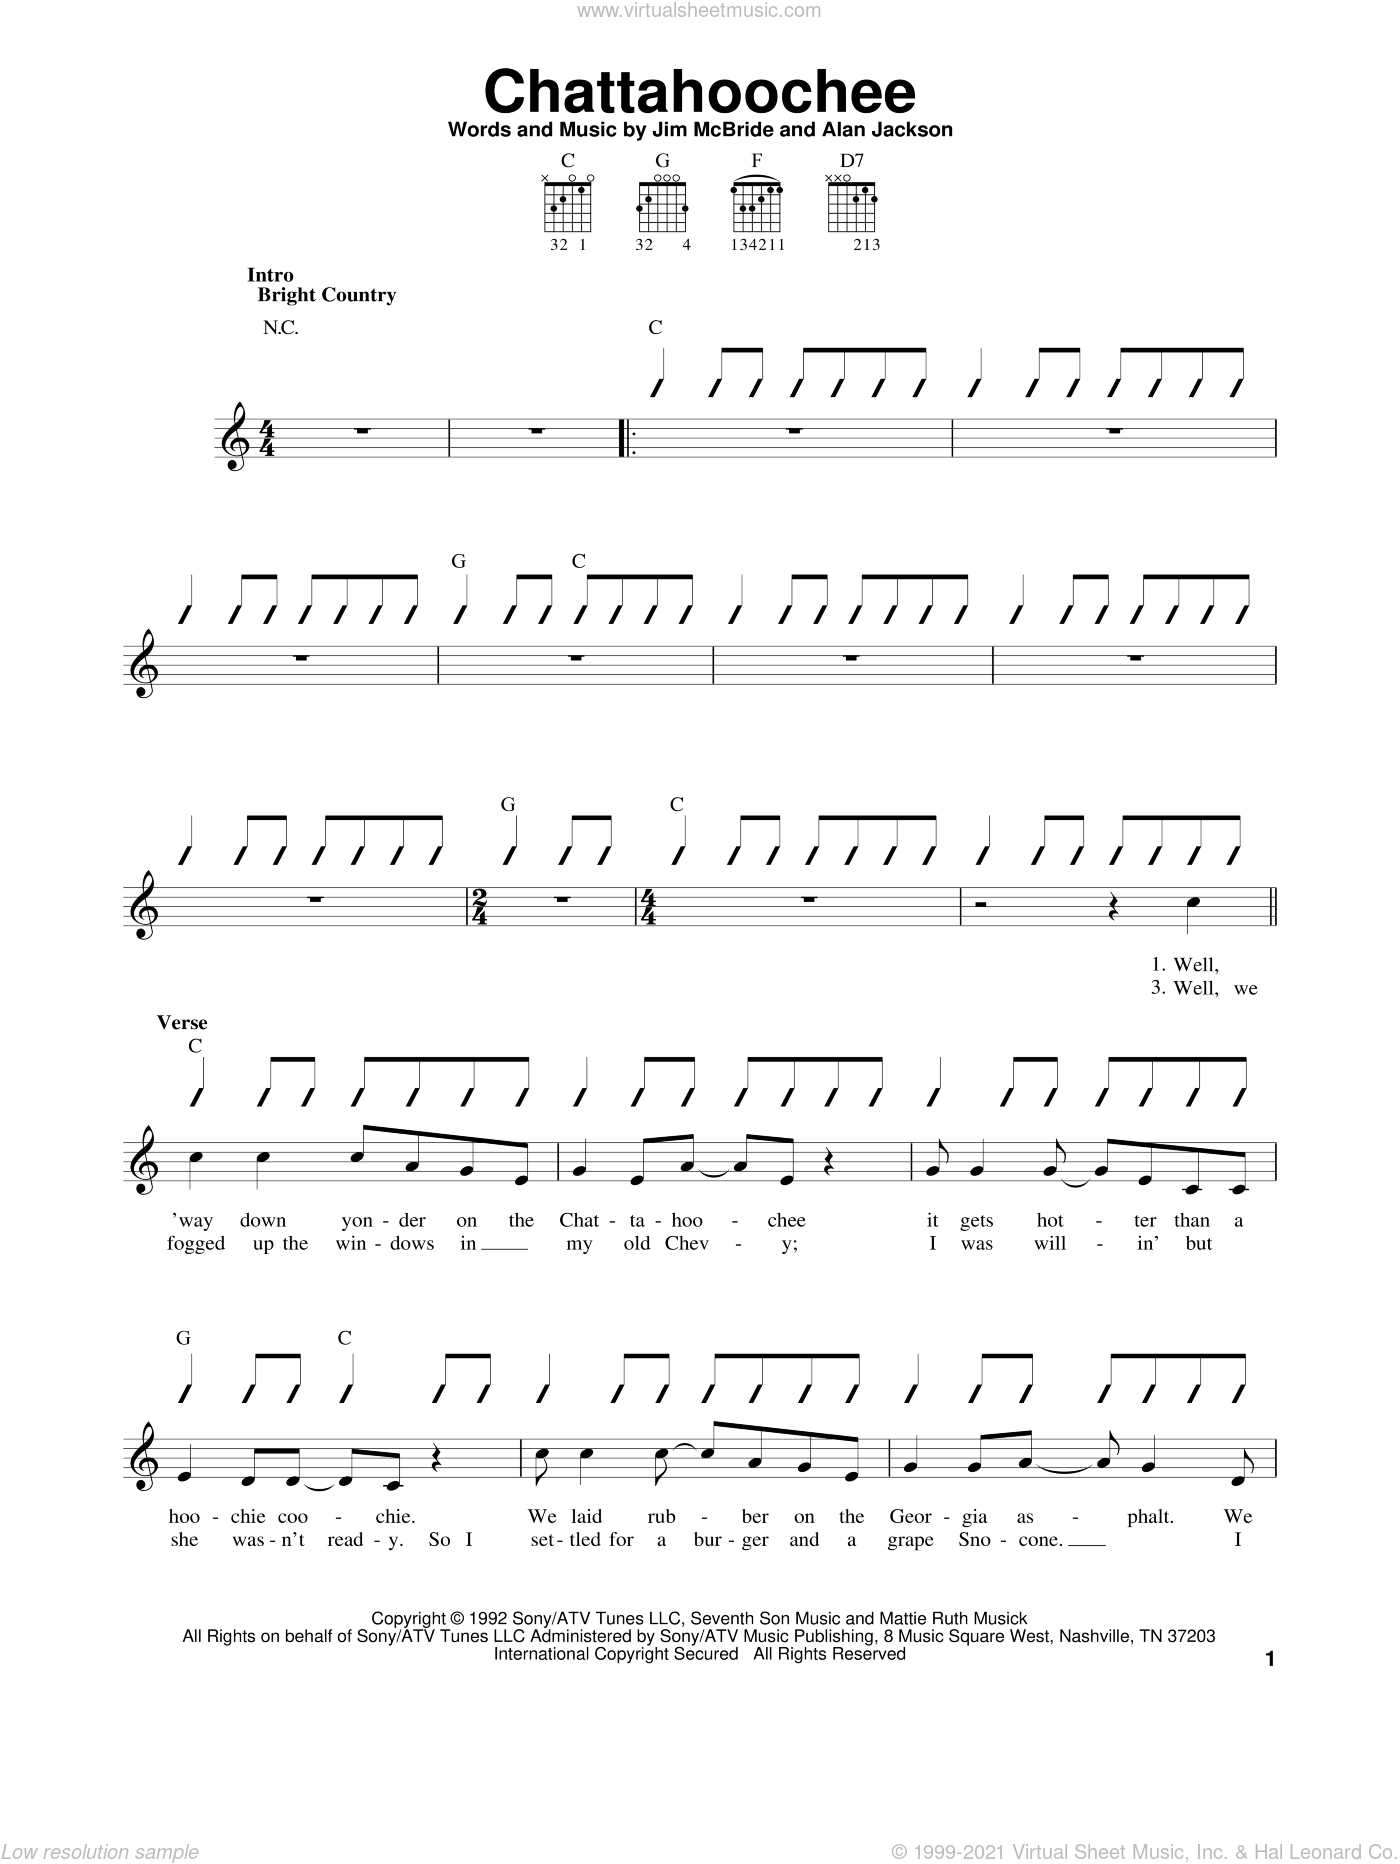 Chattahoochee sheet music for guitar solo (chords) by Jim McBride